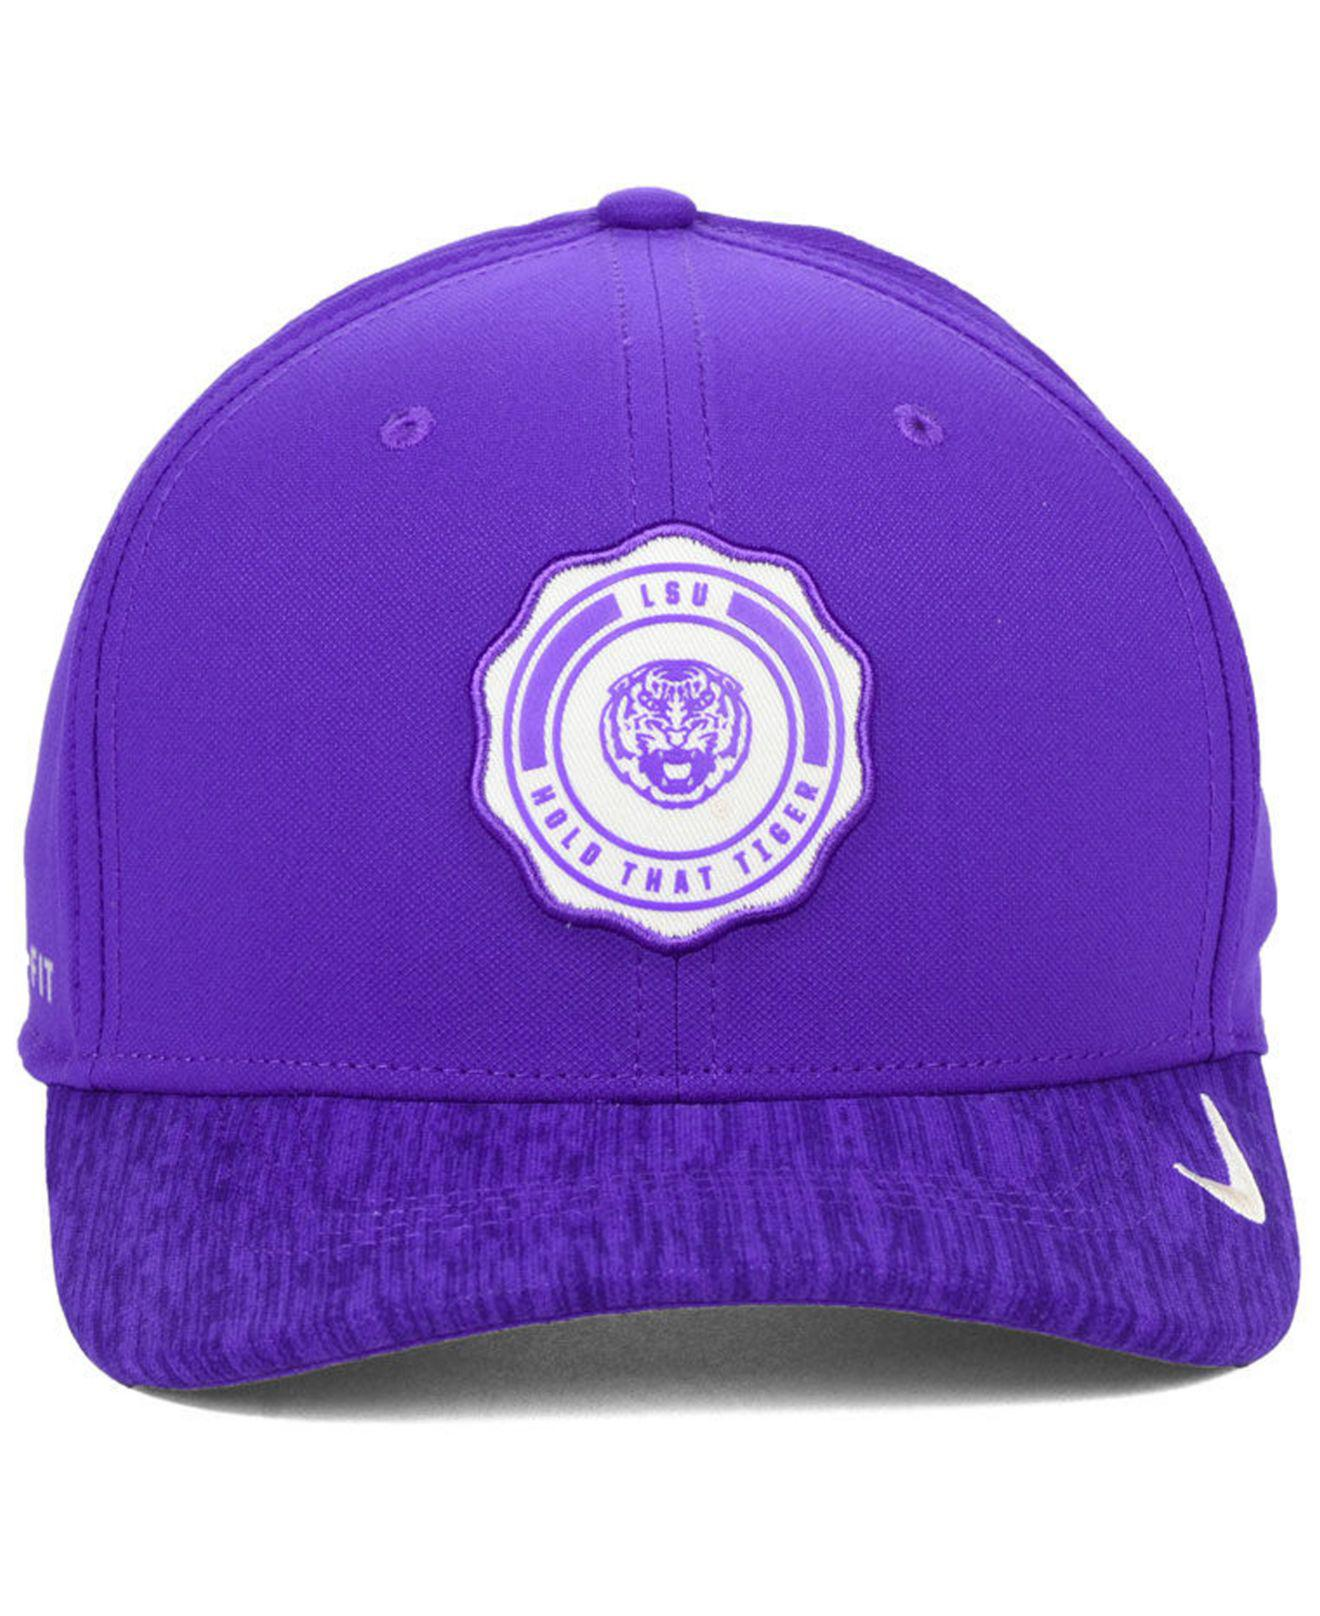 buy popular c7c08 b1955 Lyst - Nike Lsu Tigers Rivalry Swooshflex Stretch Fitted Cap in Purple for  Men